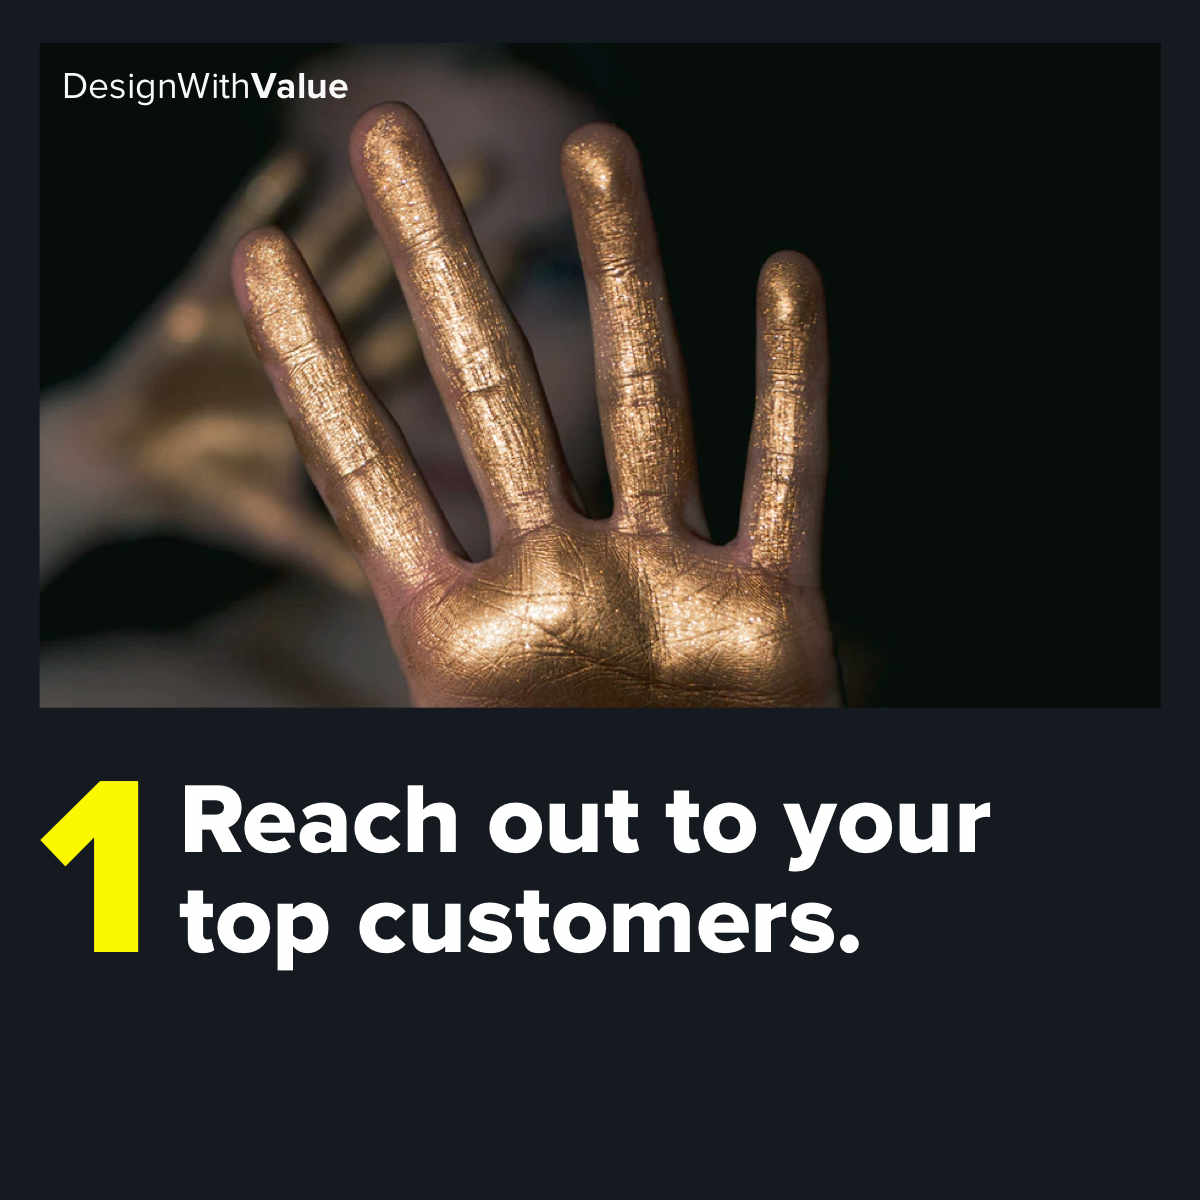 1. Reach out to your top customers.